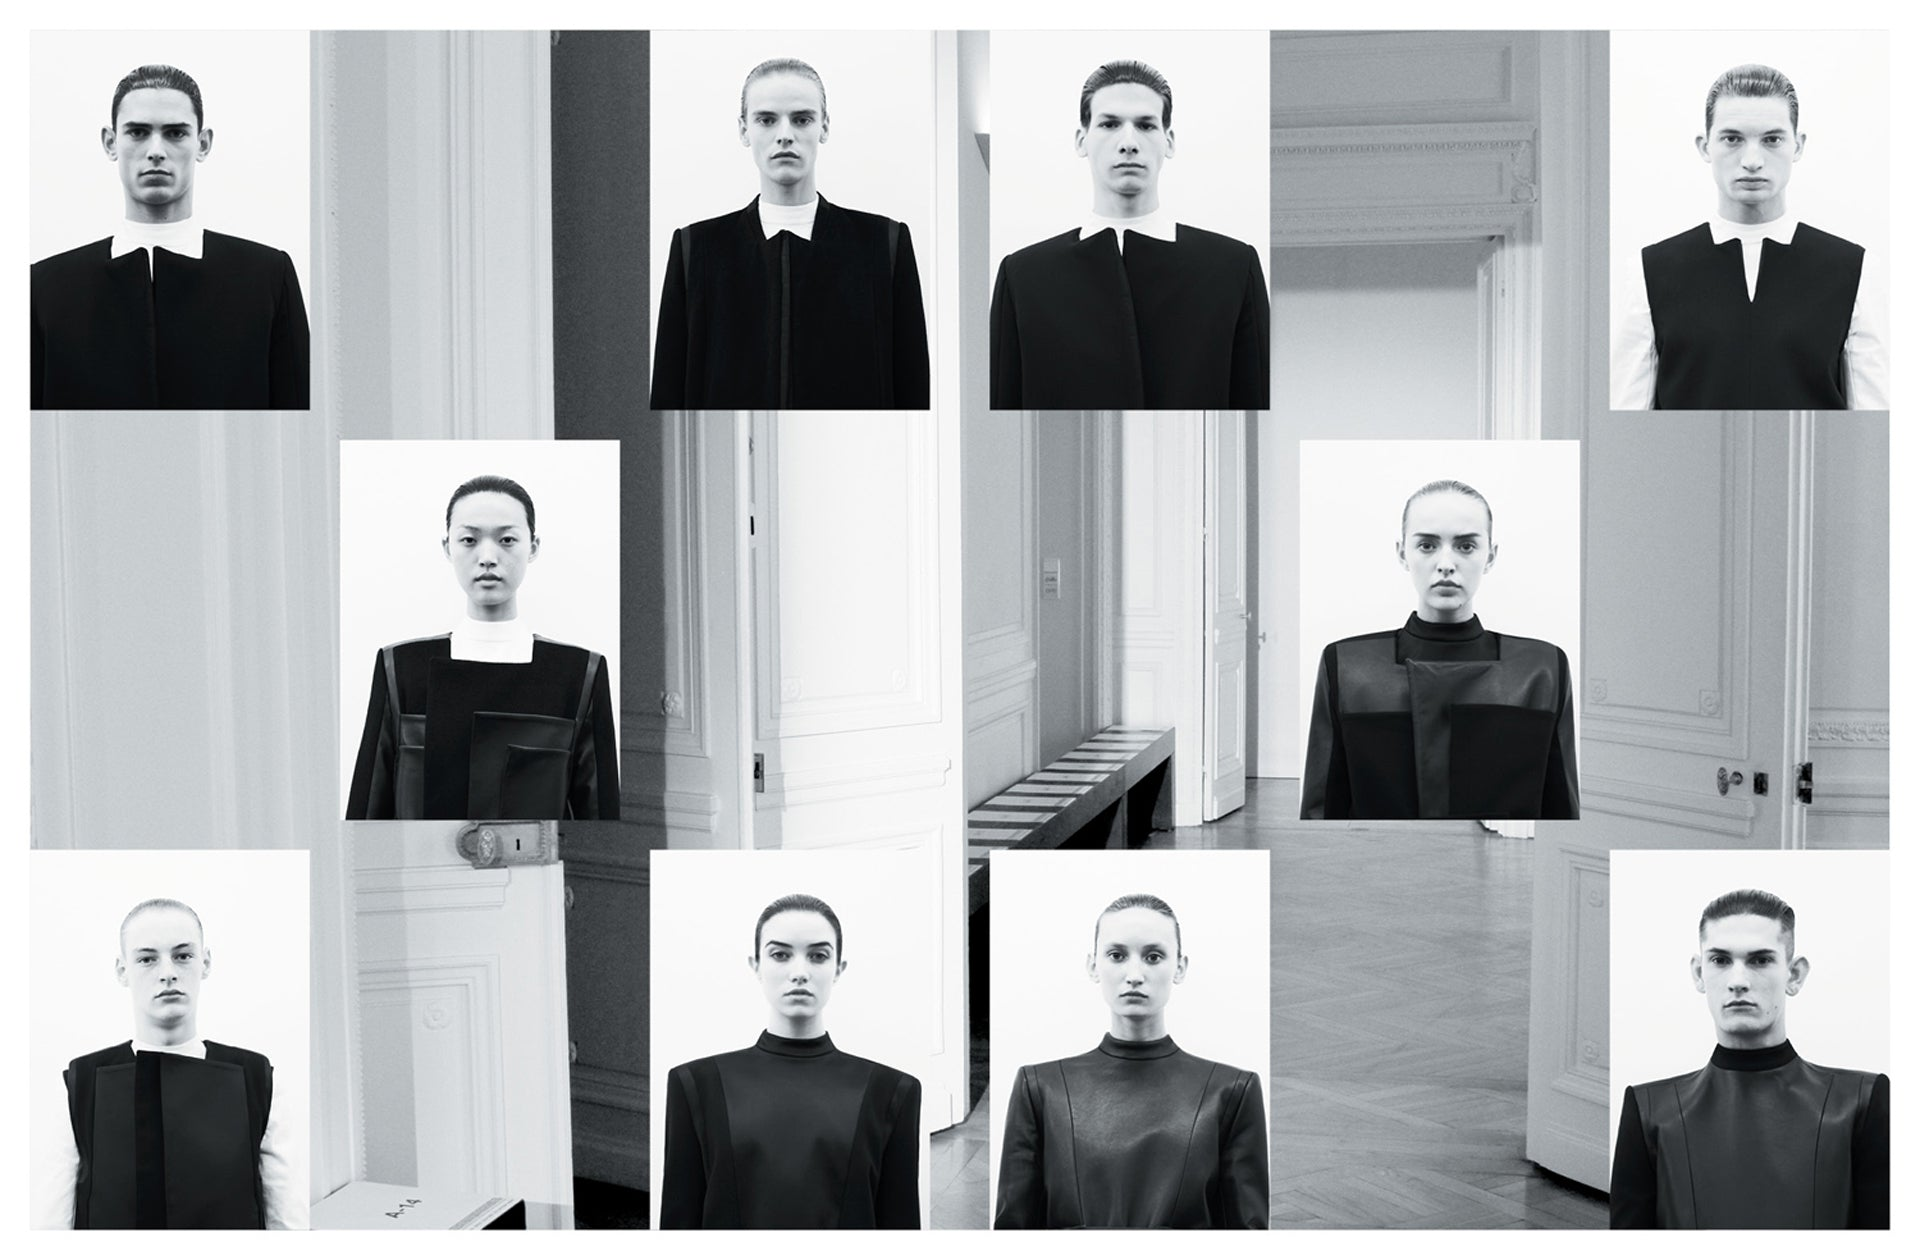 Rad Hourani Instagram Photographed by Rad Hourani